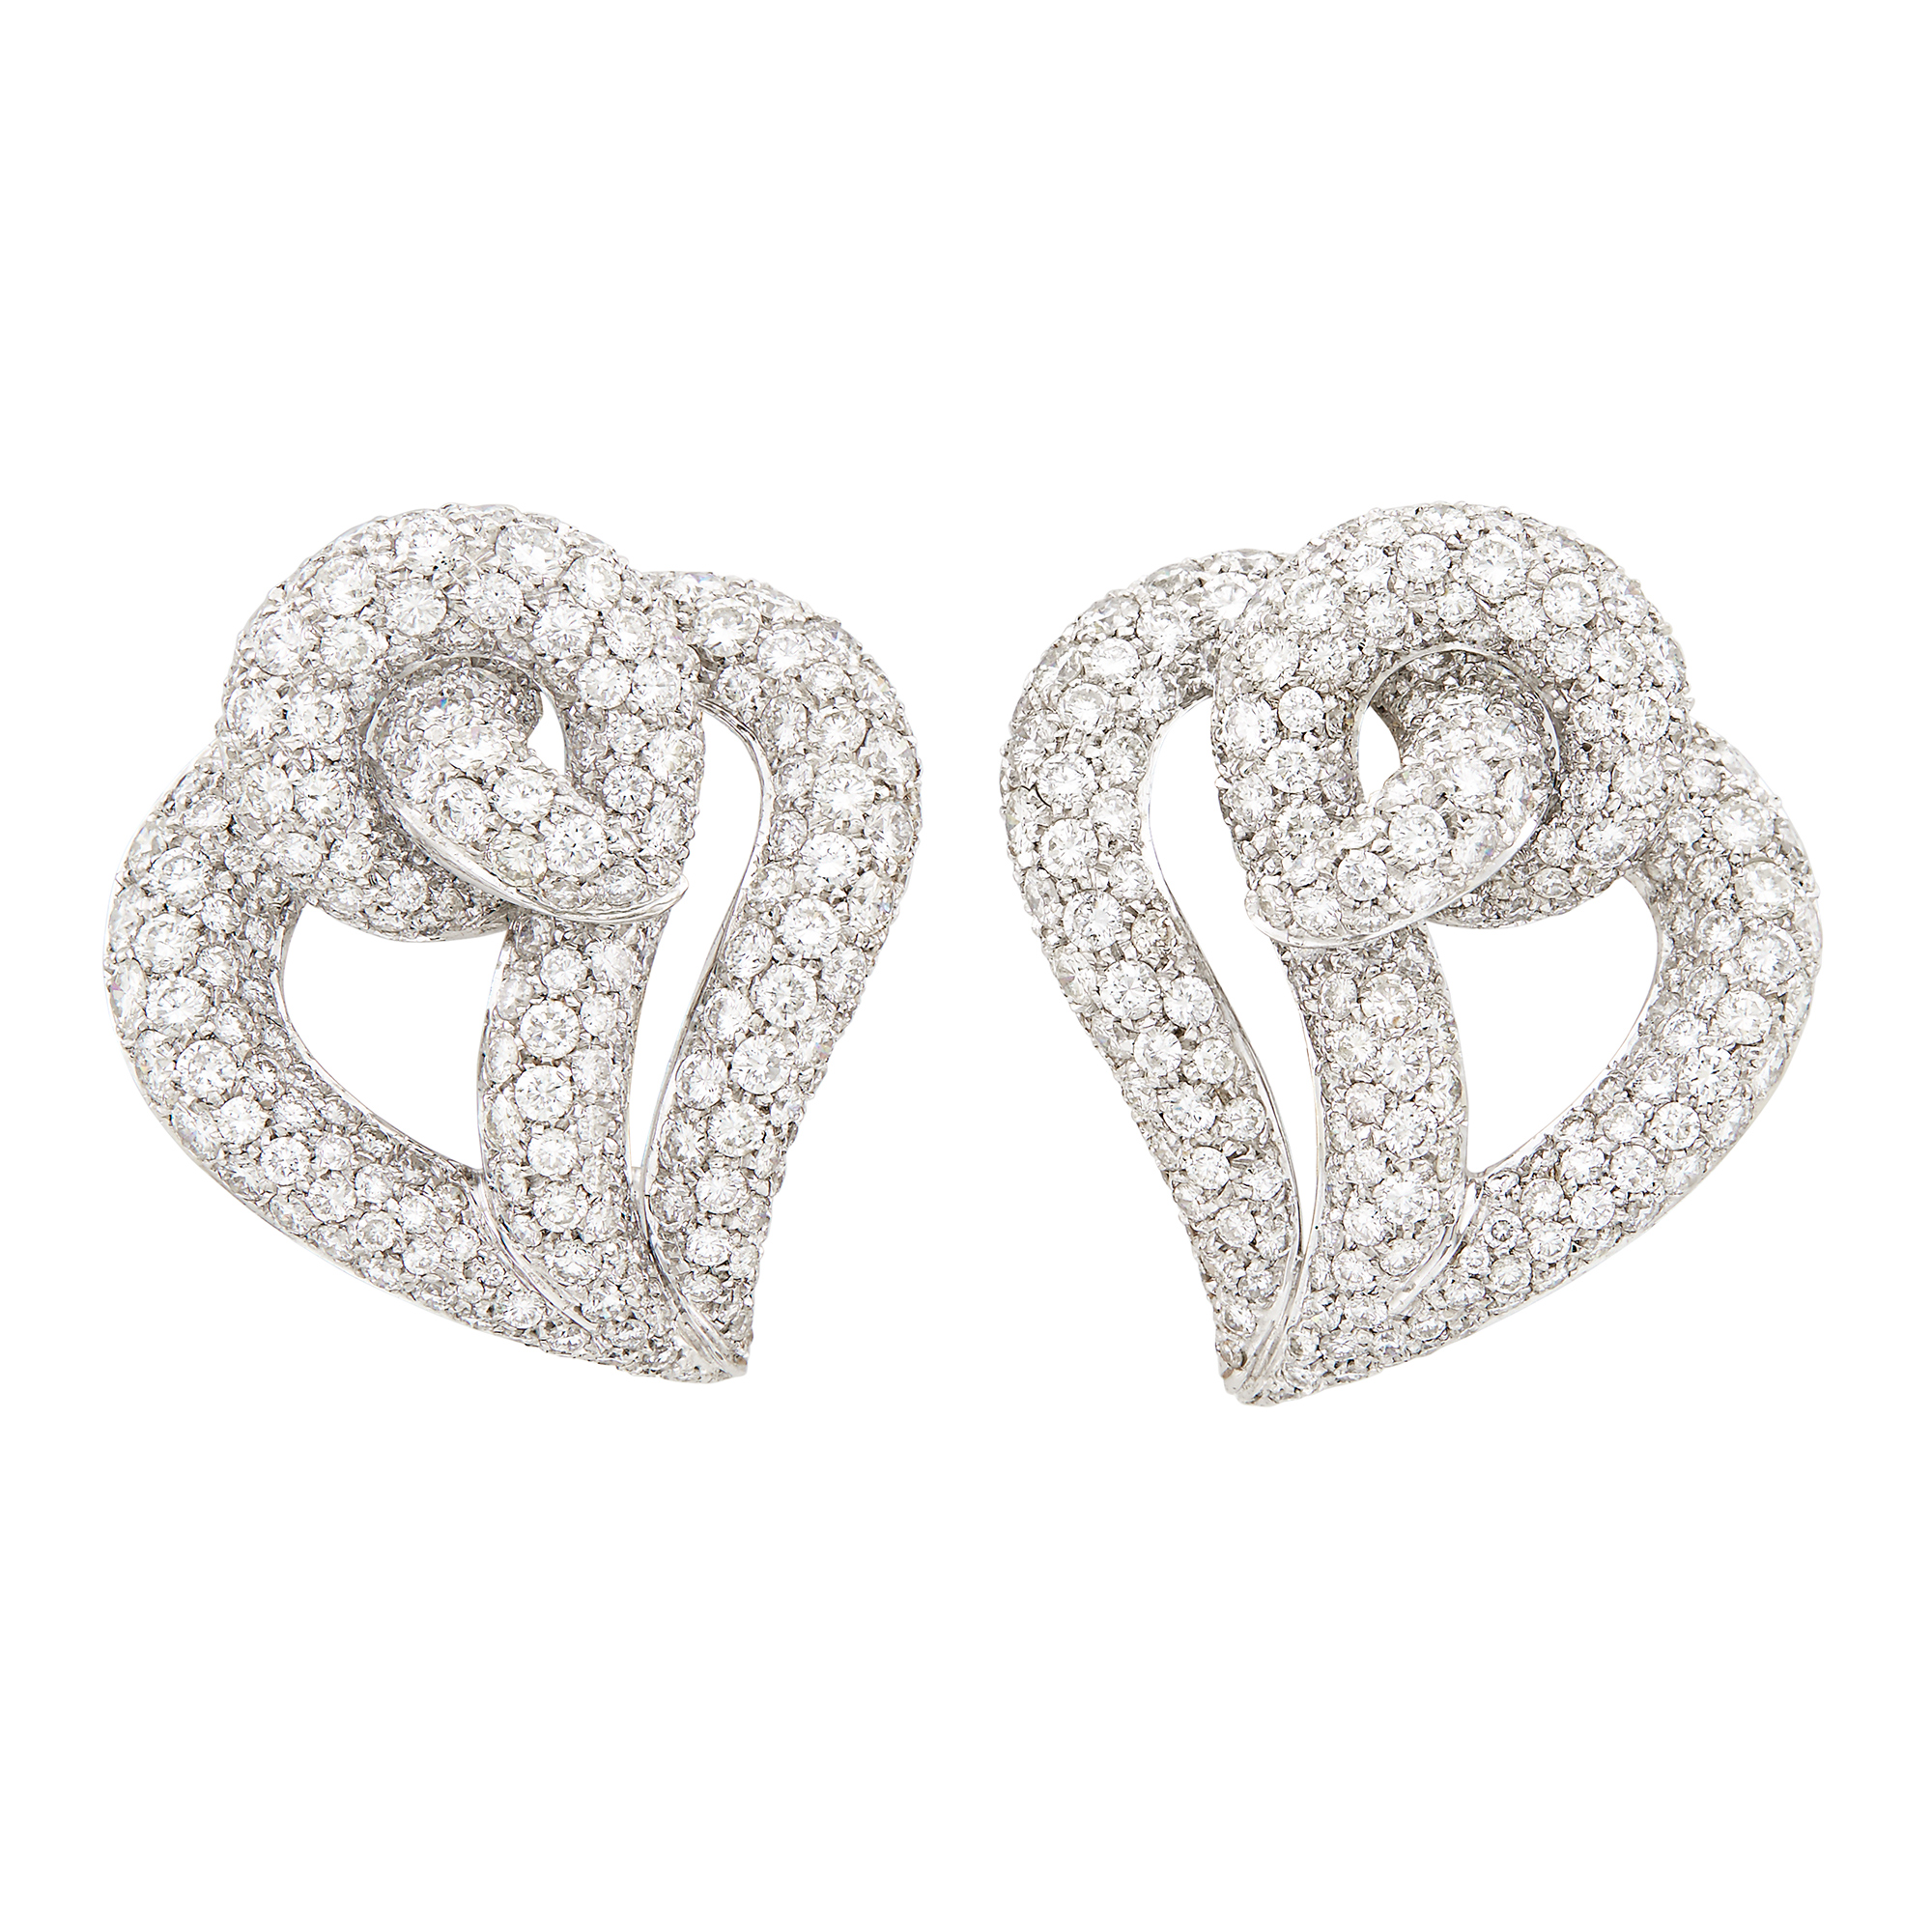 Lot image - Pair of White Gold and Diamond Earclips, David Morris